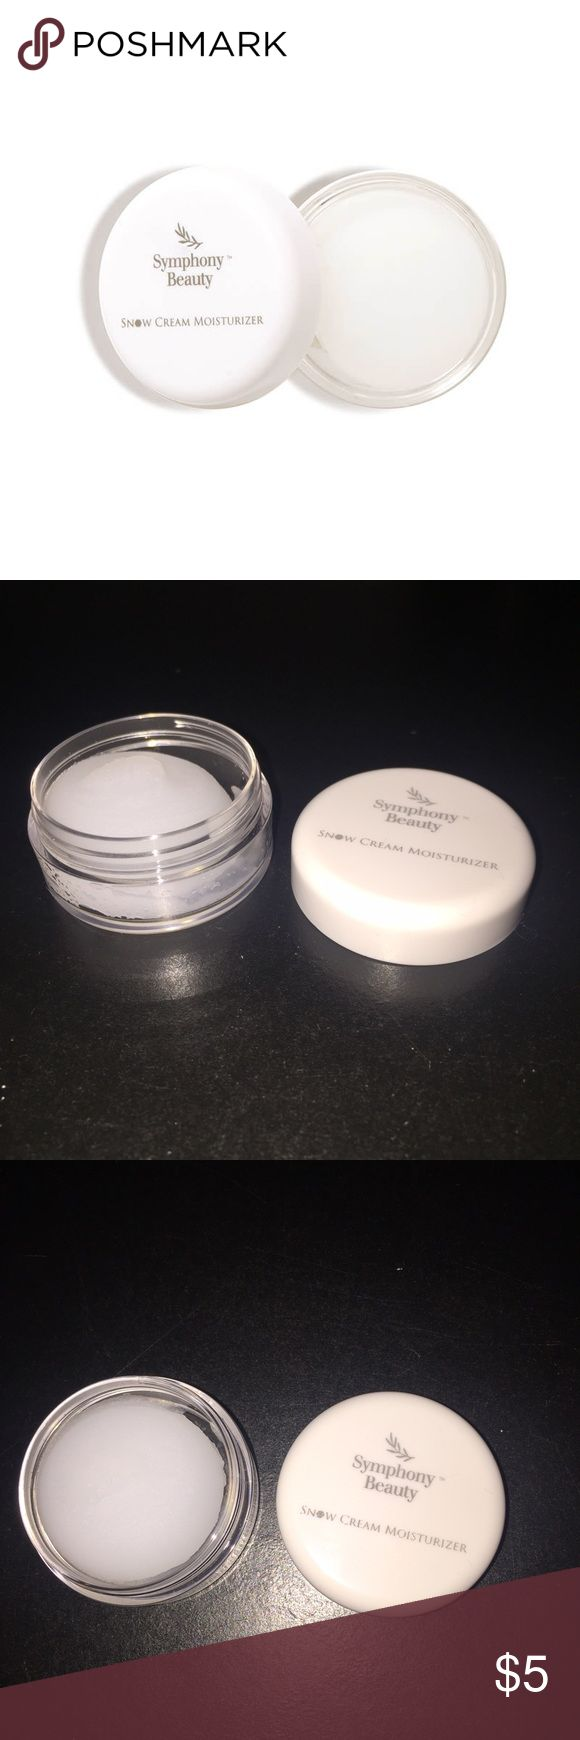 Brand New Snow Cream Moisturizer Brand never never been used Snow Cream Moisturizer by Symphony Beauty! Selling because I have an allergies to one of the ingredients but it has great reviews online! Sephora Makeup